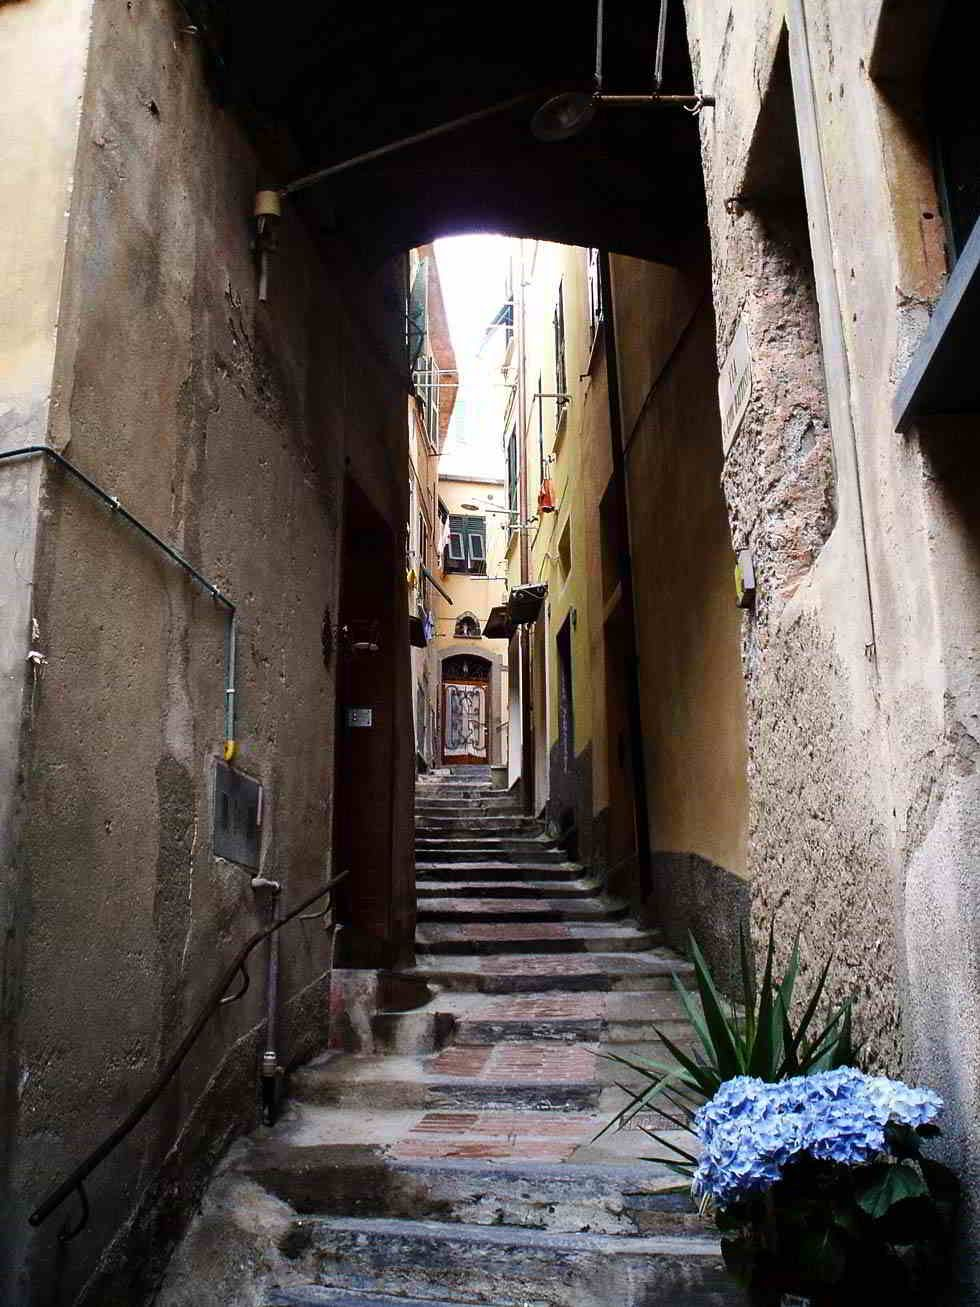 Winding passageways hidden in the side streets of Vernazza, Italy